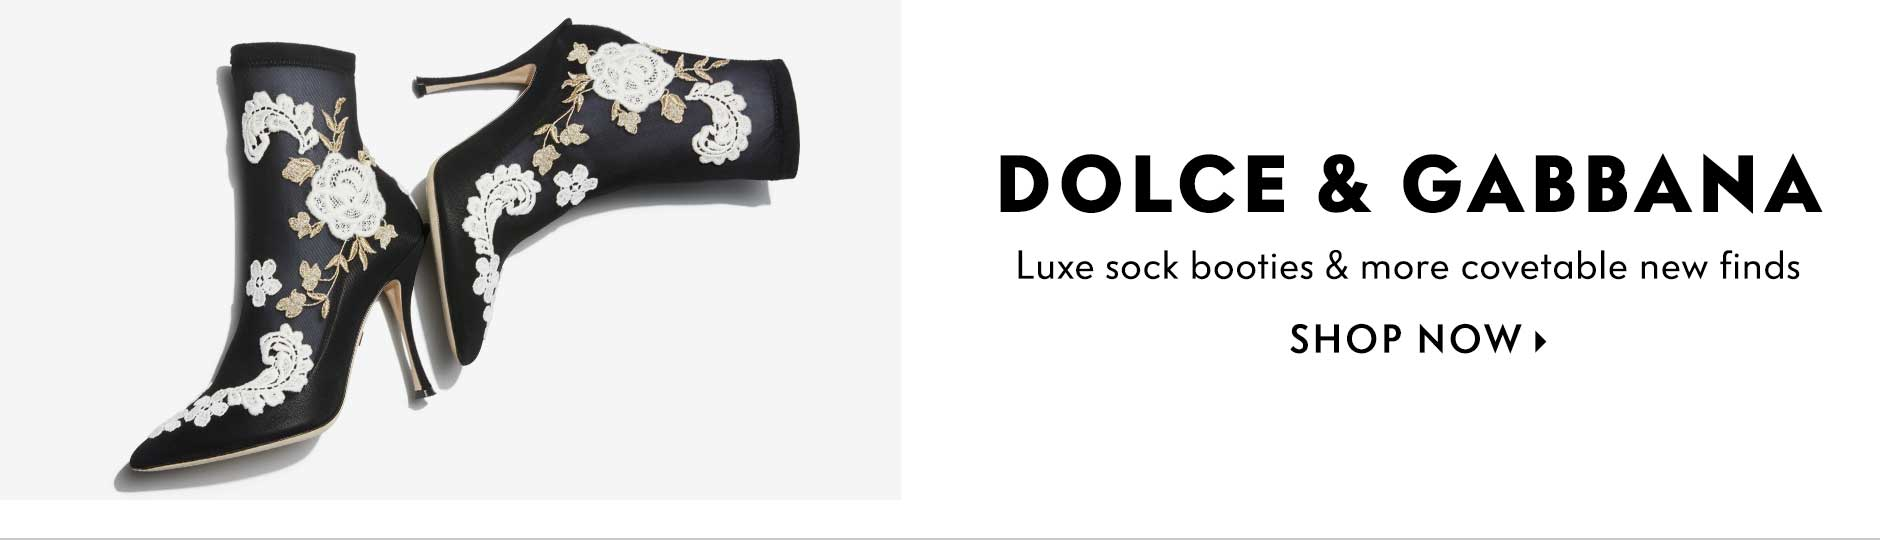 Dolce & Gabbana - Luxe sock booties & more covetable new finds